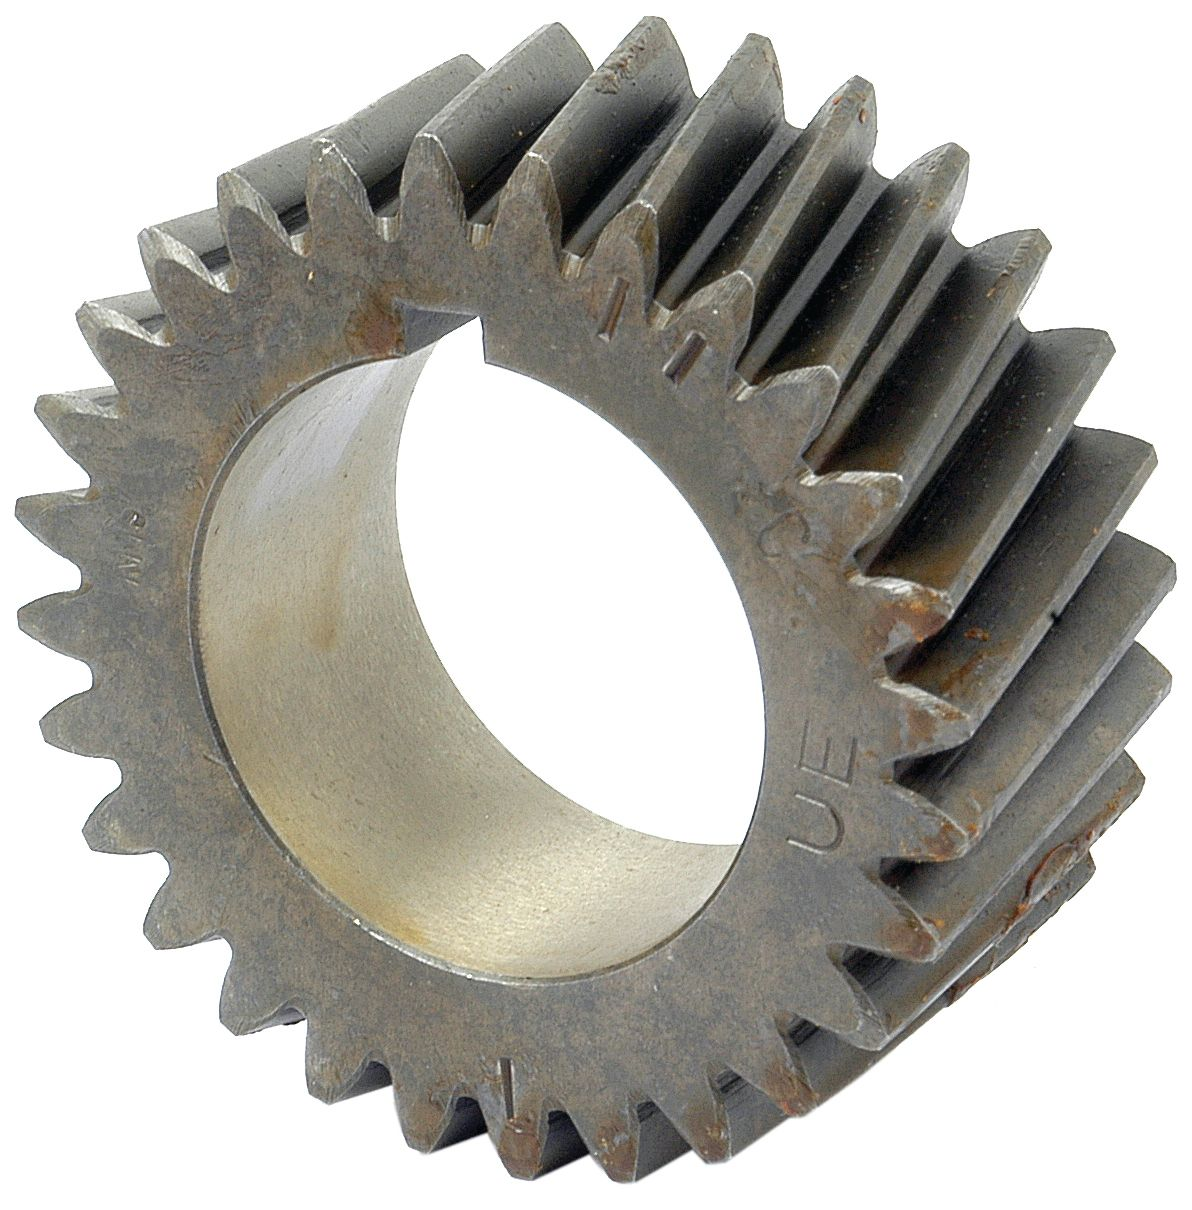 PERKINS GEAR-CRANKSHAFT